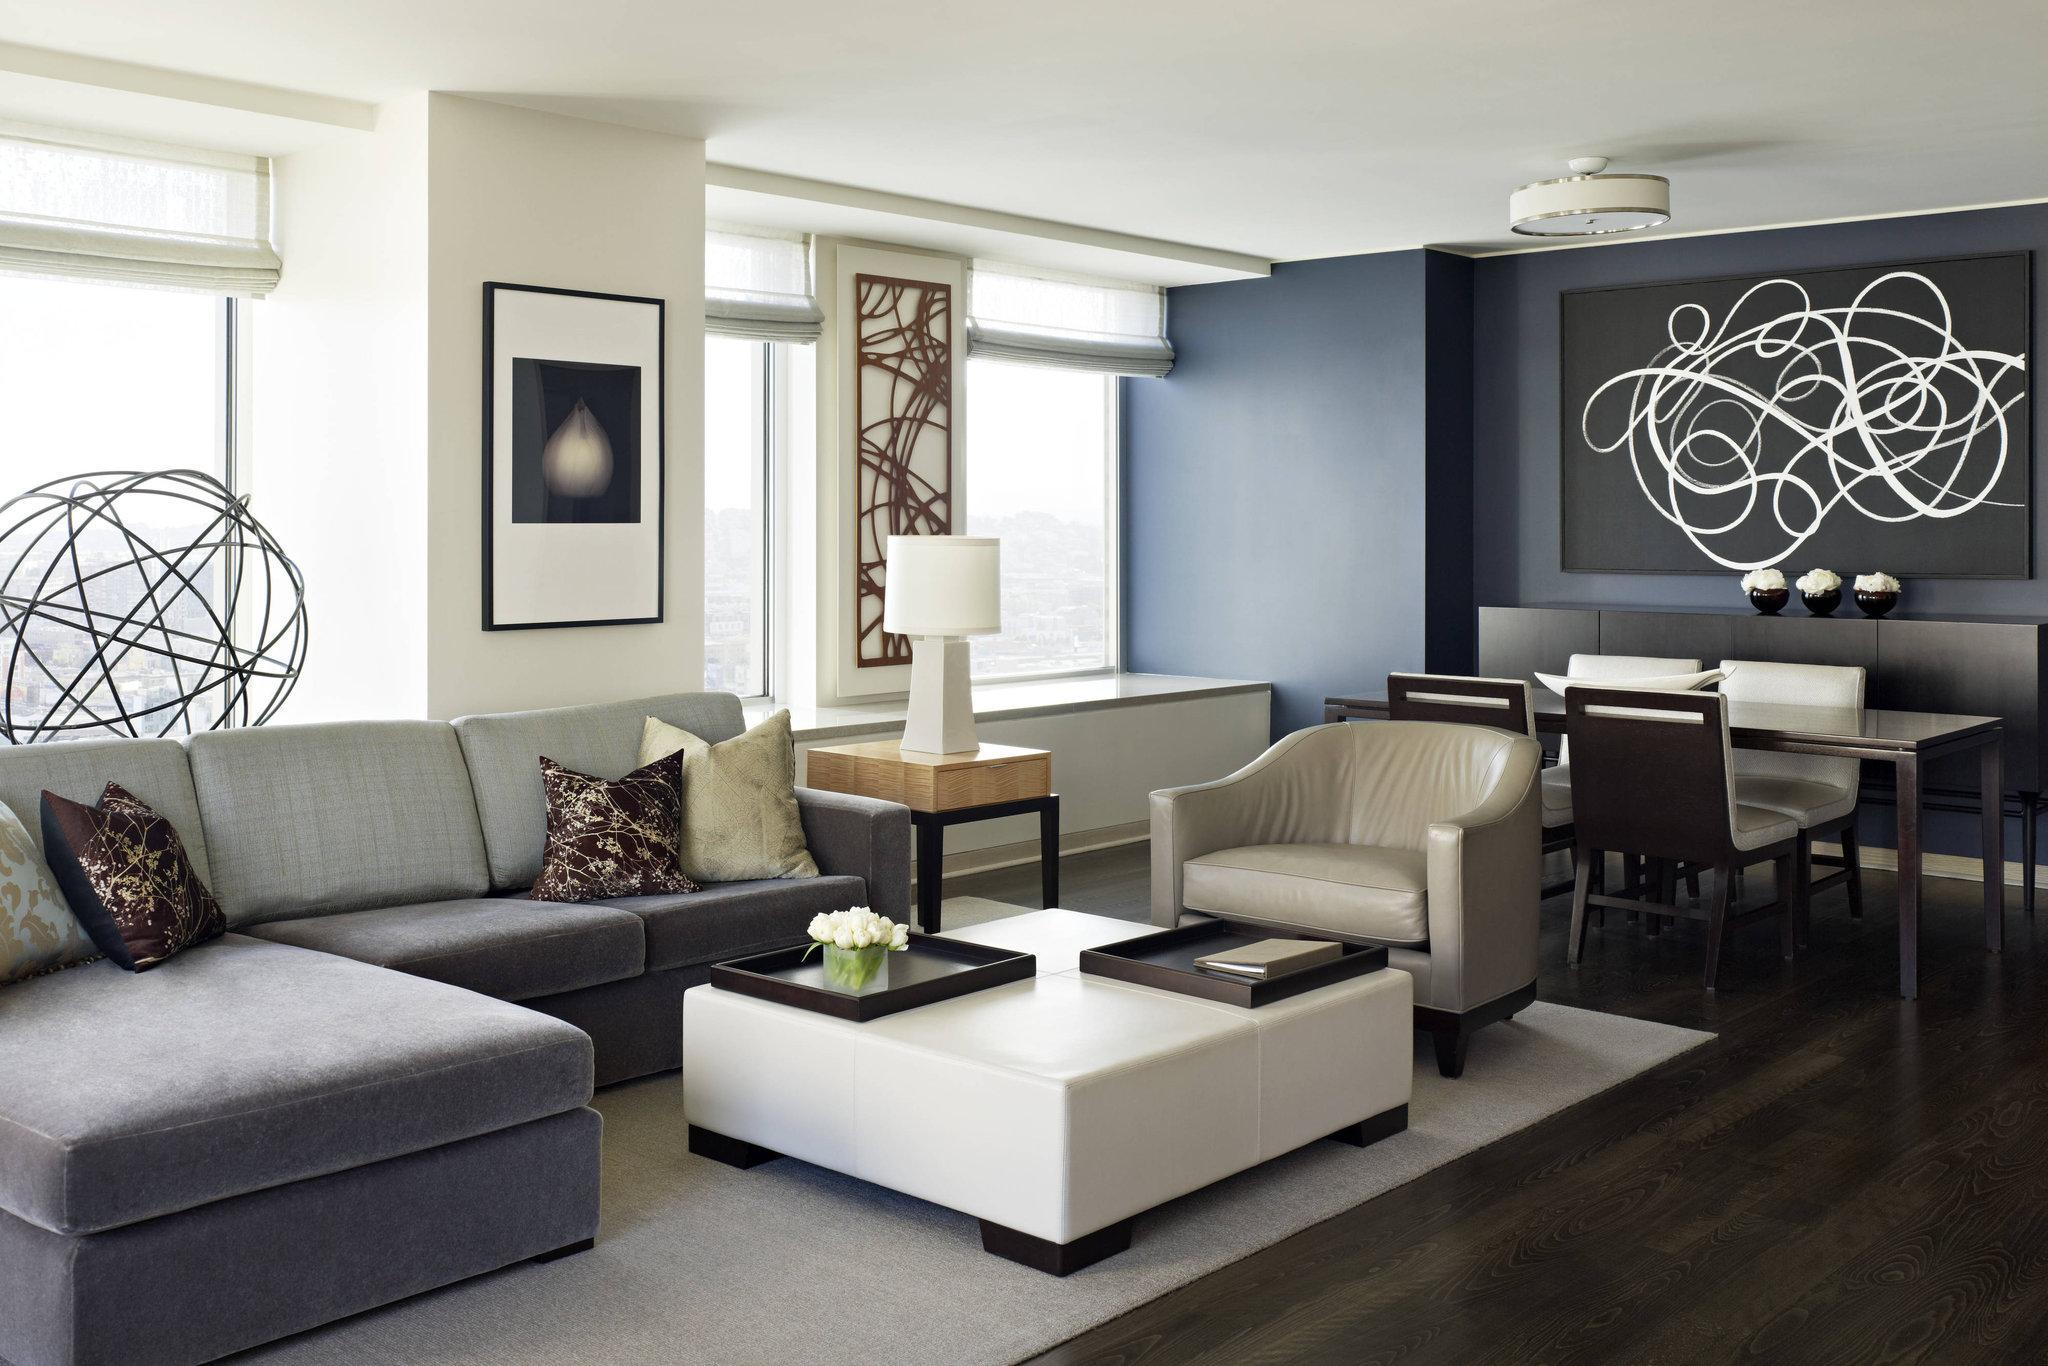 St. Regis Suite, 1 Bedroom Suite, 1 King